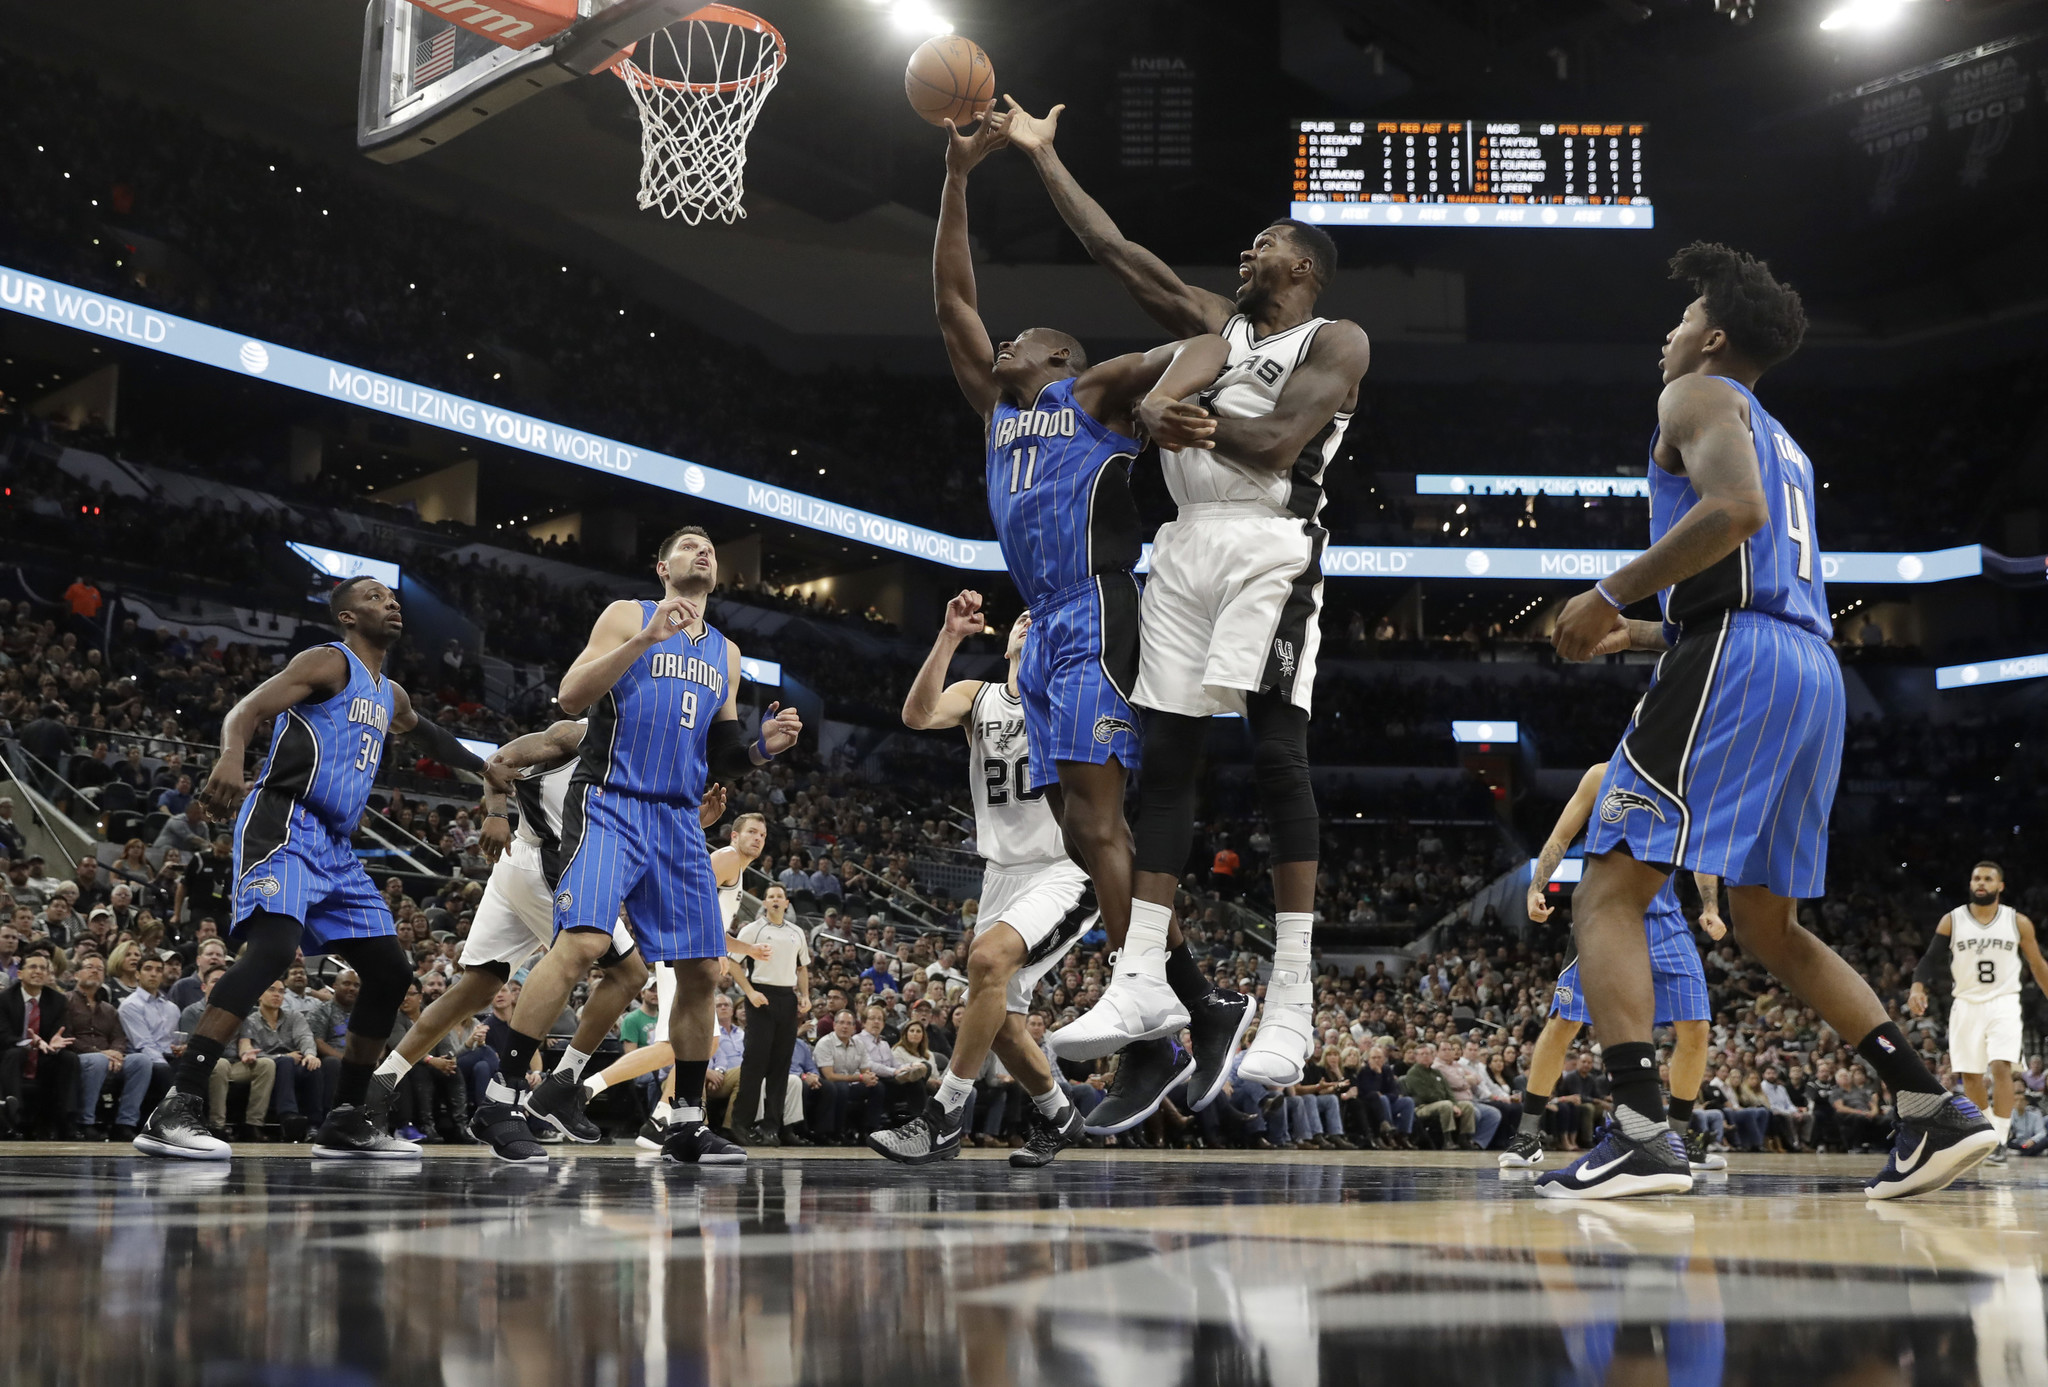 Os-orlando-magic-look-to-add-scoring-20161205